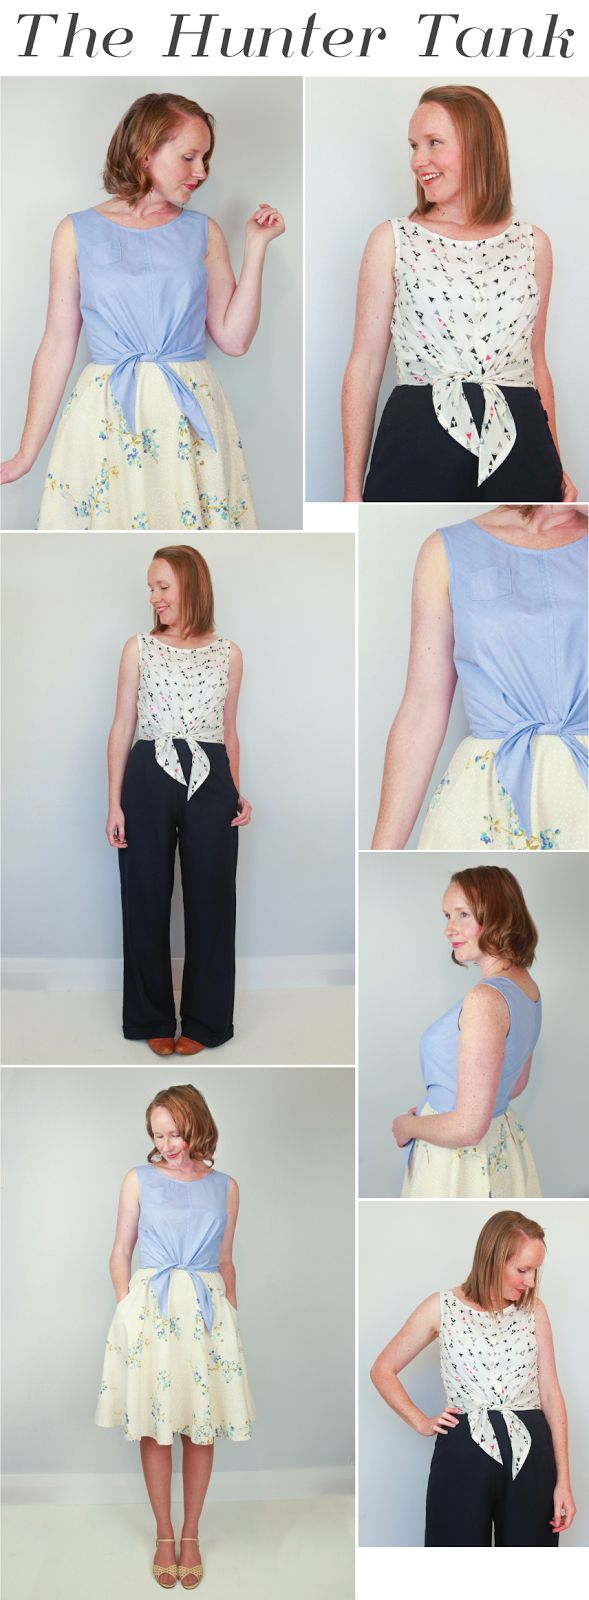 Introducing The Hunter Tank, A New Summer Sewing Pattern. Tie waist blouse.